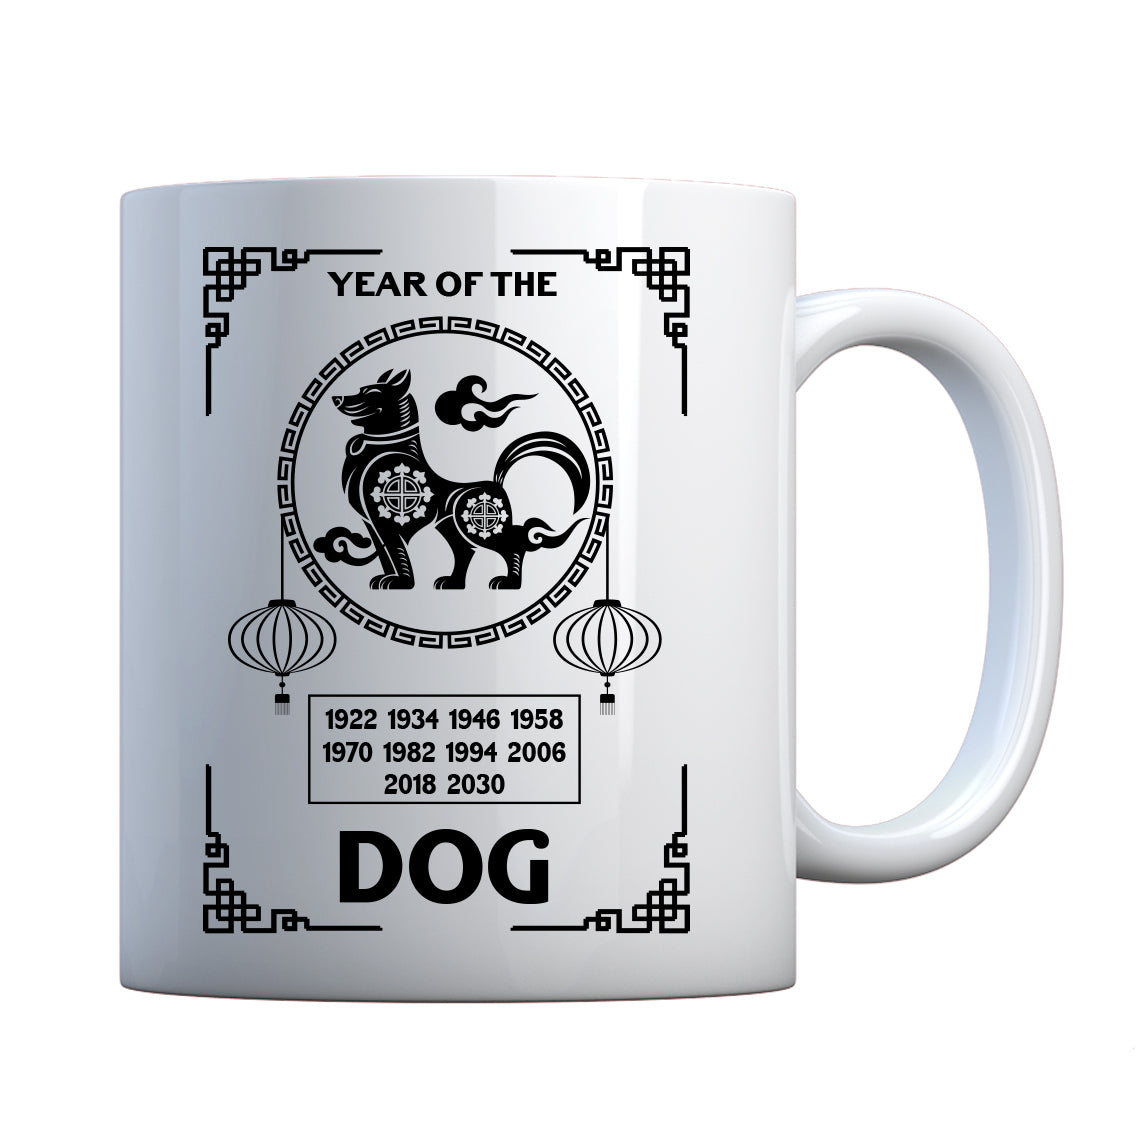 Mug Year of the Dog Ceramic Gift Mug